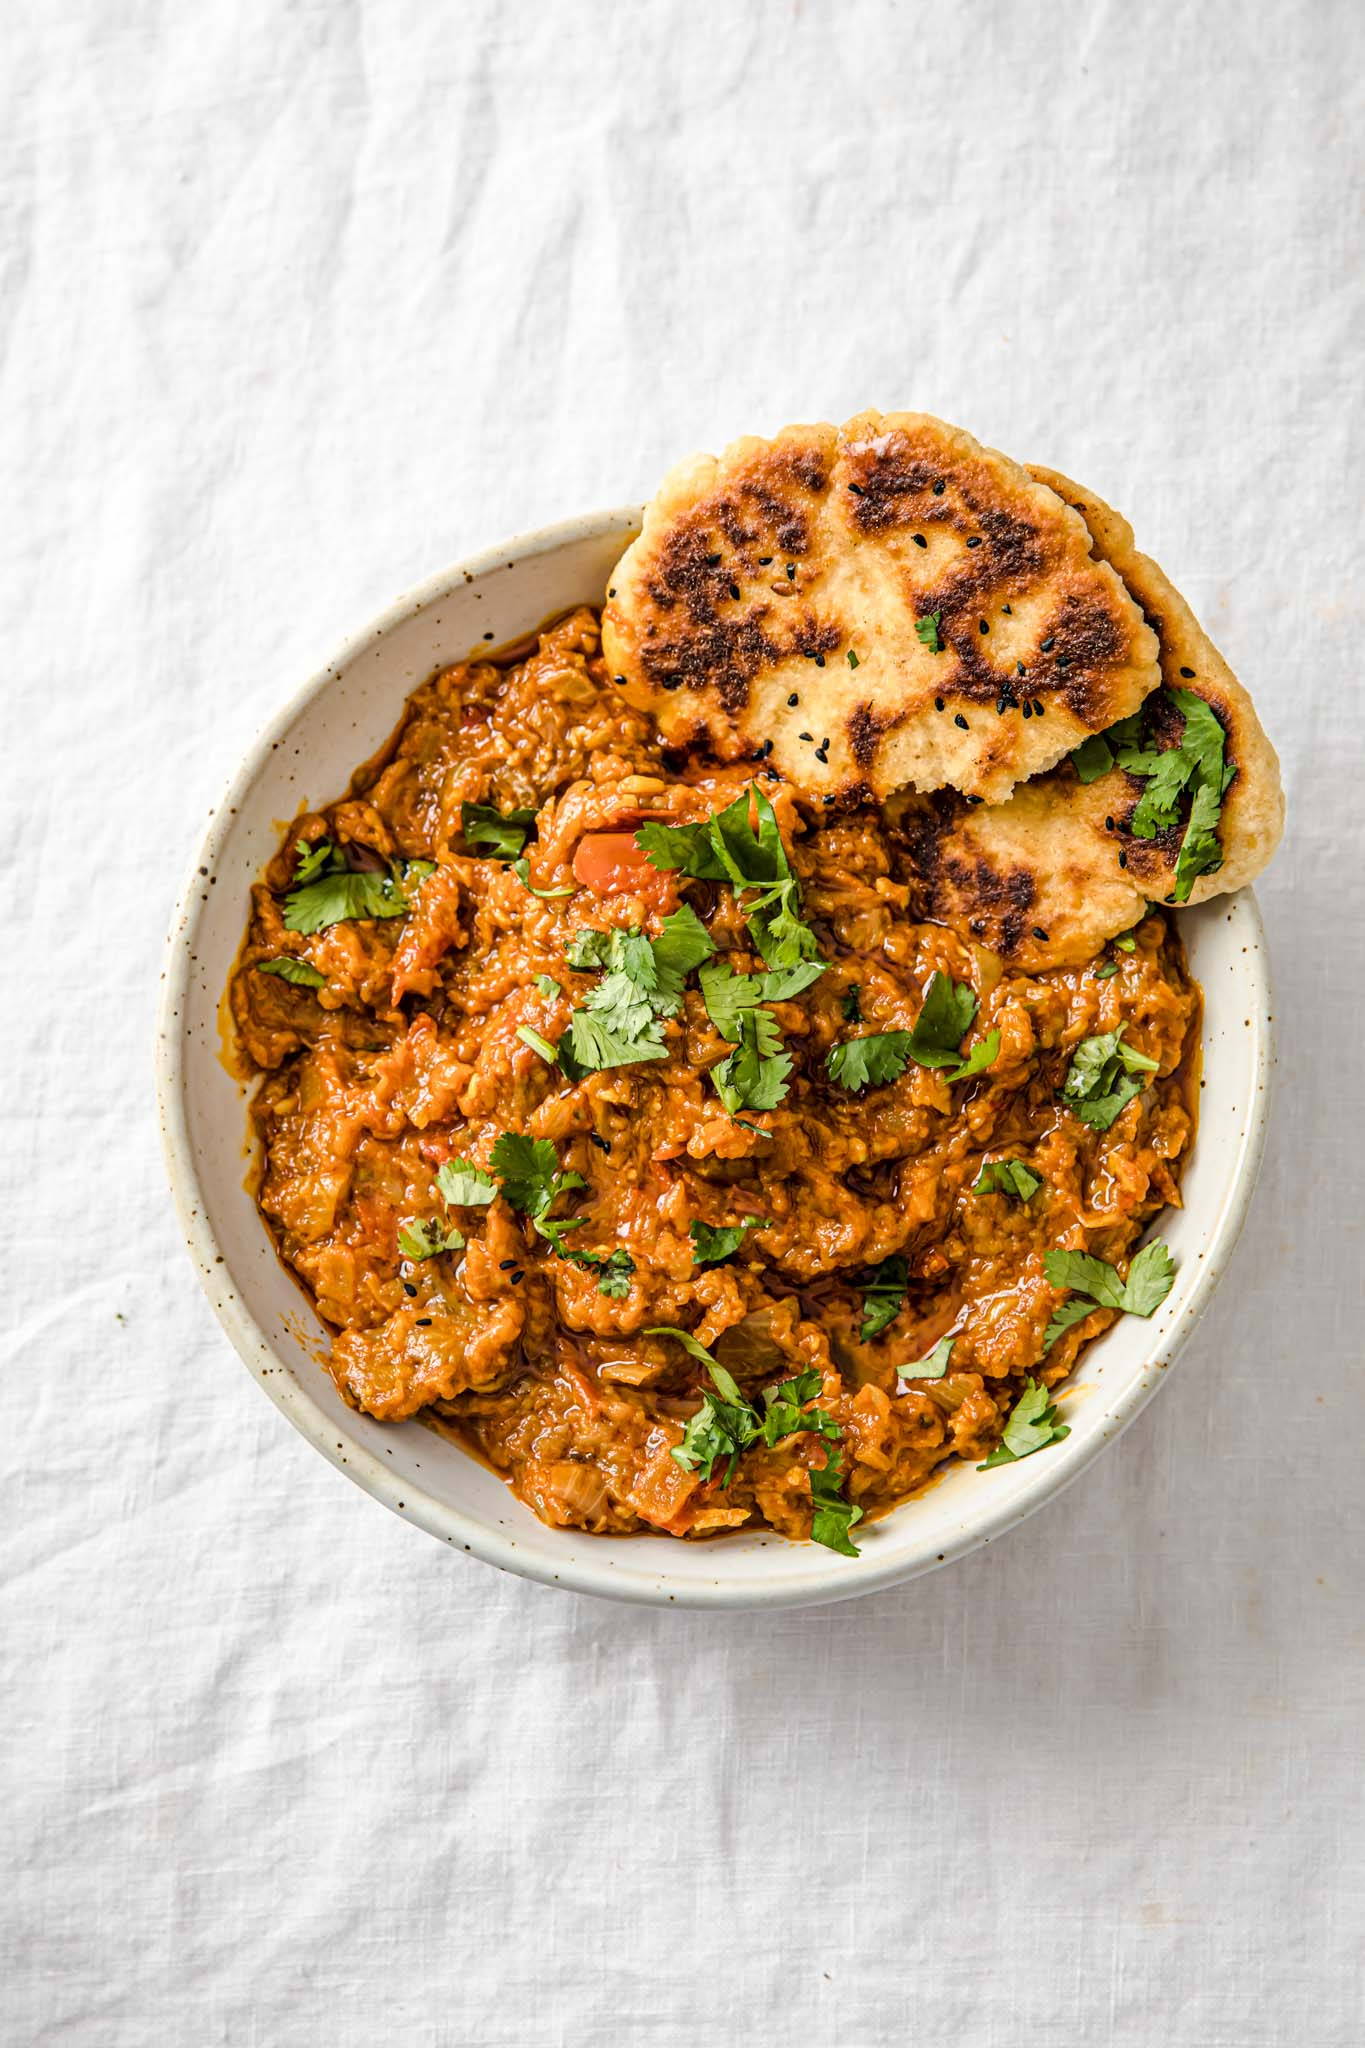 Baingan Bharta (Oven-Roasted Eggplant Curry) in a speckled bowl with naan and garnished cilantro